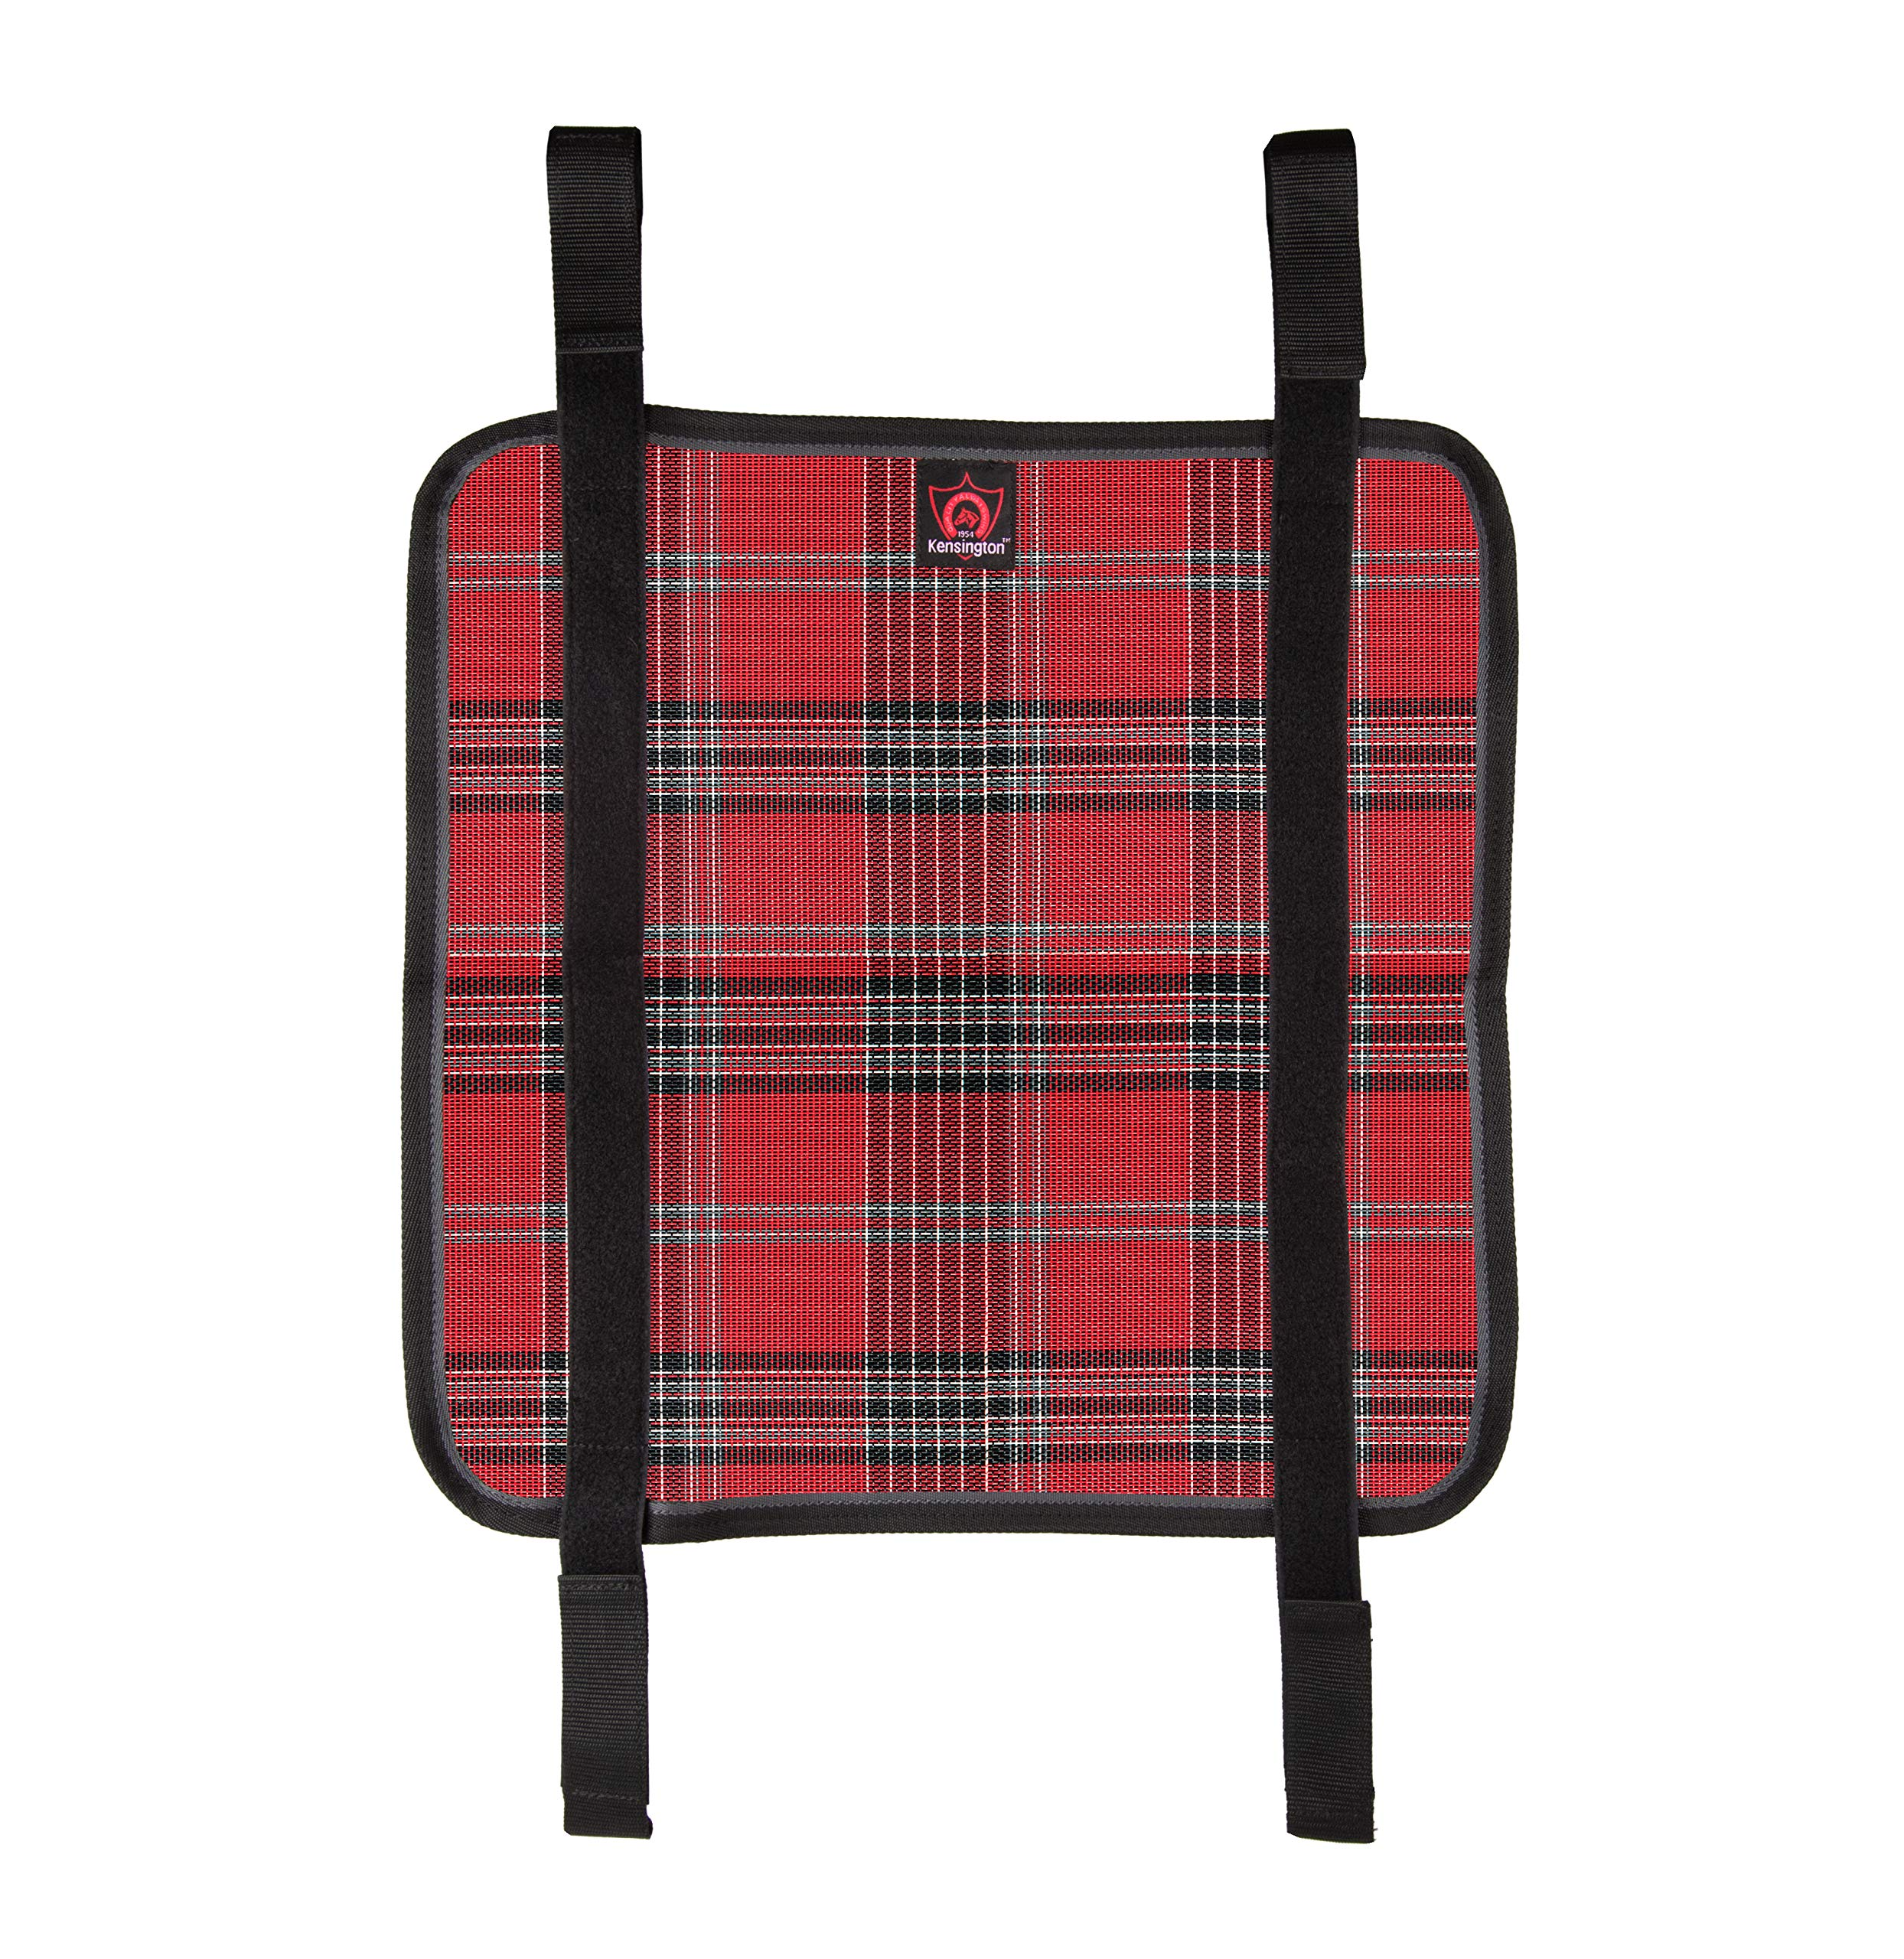 Kensington Belly Band For Horse Under Belly - Protects Under Belly When Attached to Traditional Cut Protective Sheet - Offers Maximum Protection Year Round - Deluxe Red Plaid